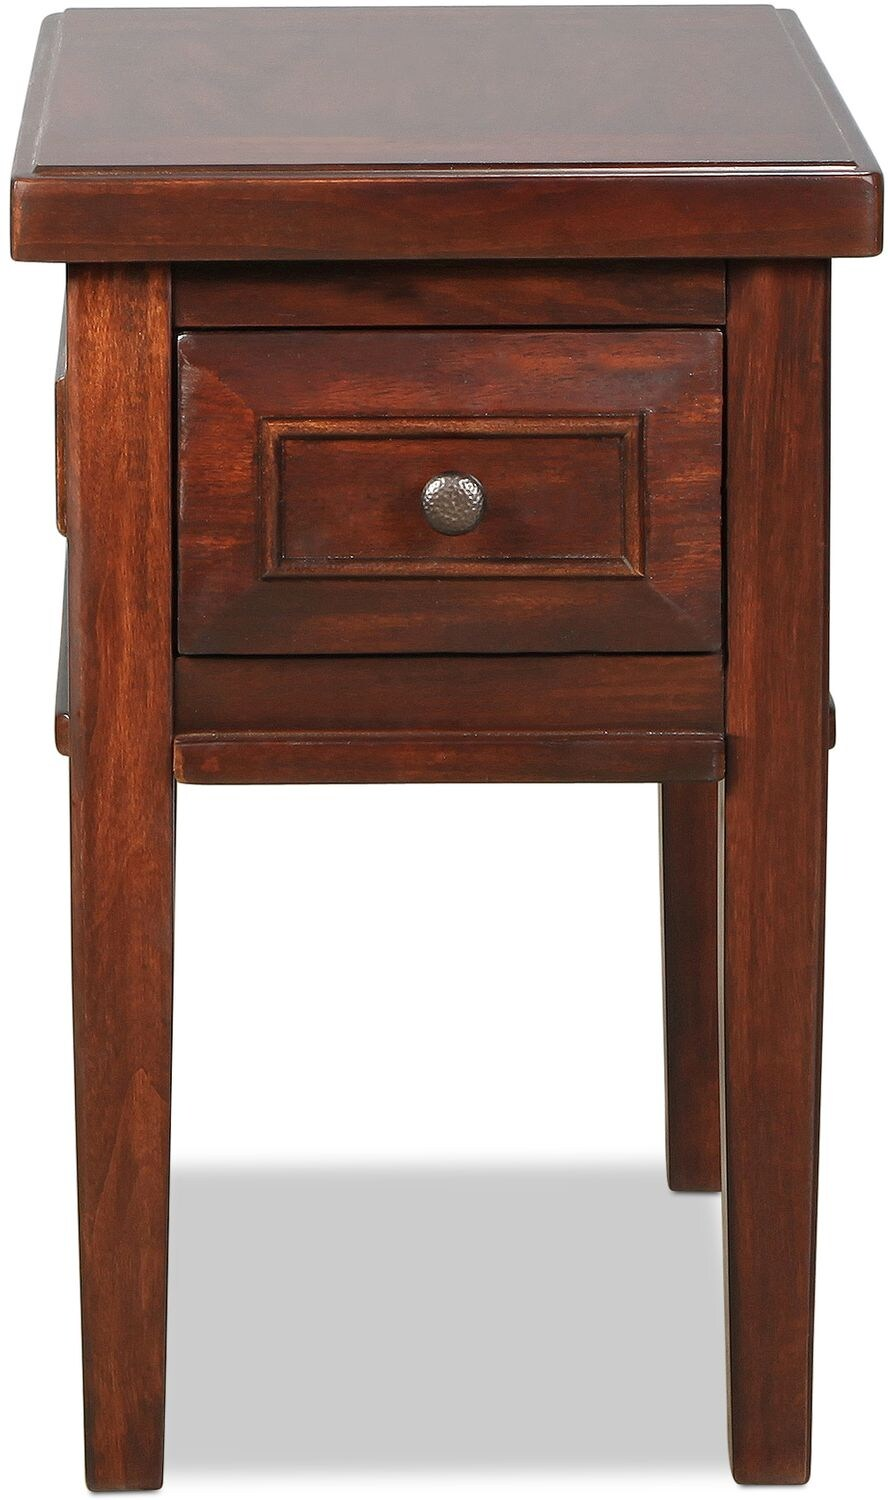 Accent and Occasional Furniture - Bentworth Chairside Table - Rustic Brown